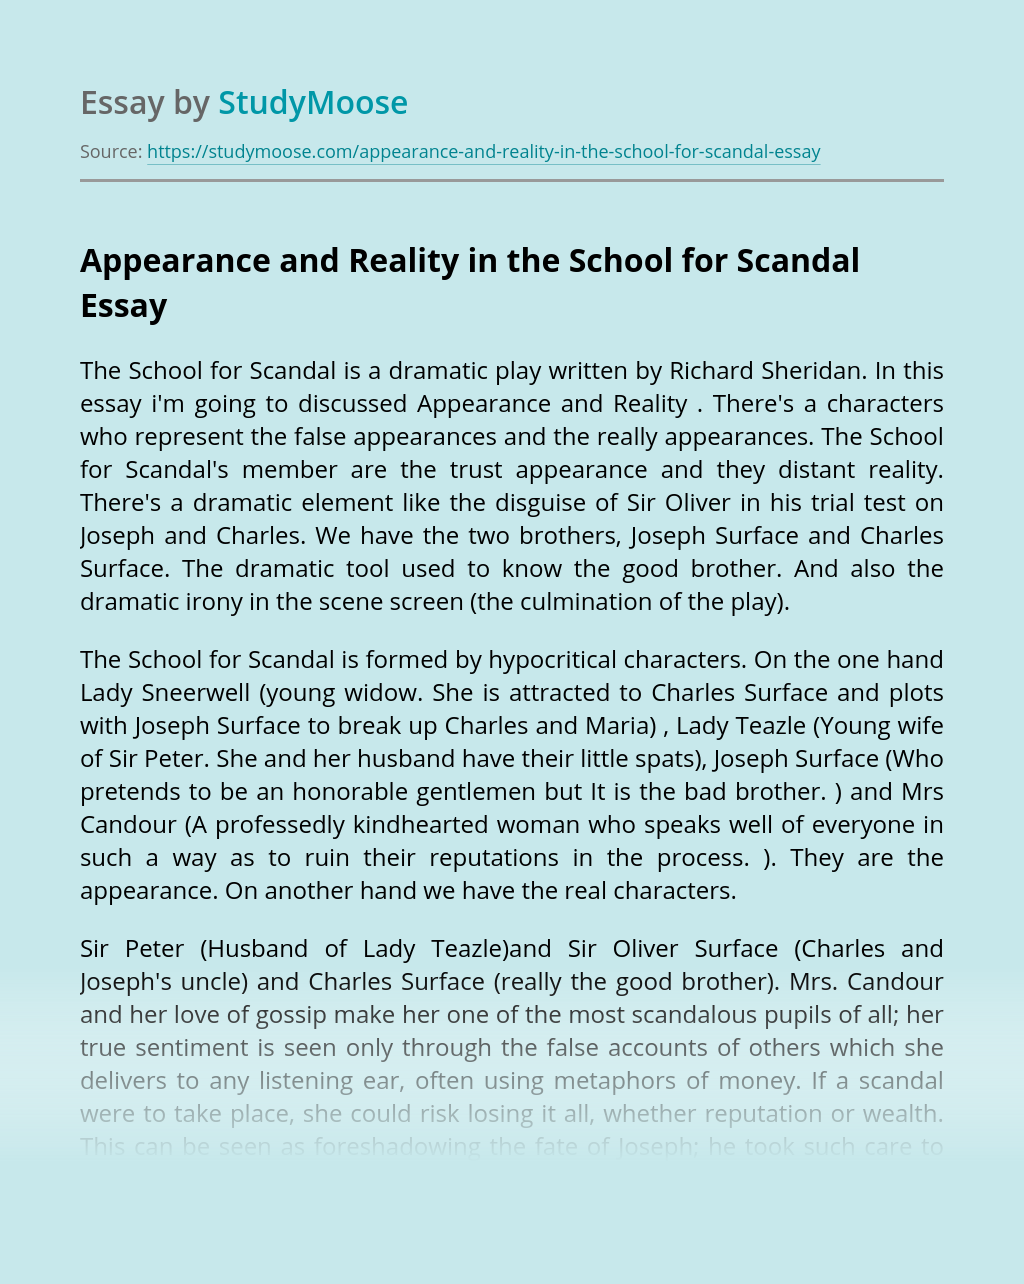 Appearance and Reality in the School for Scandal